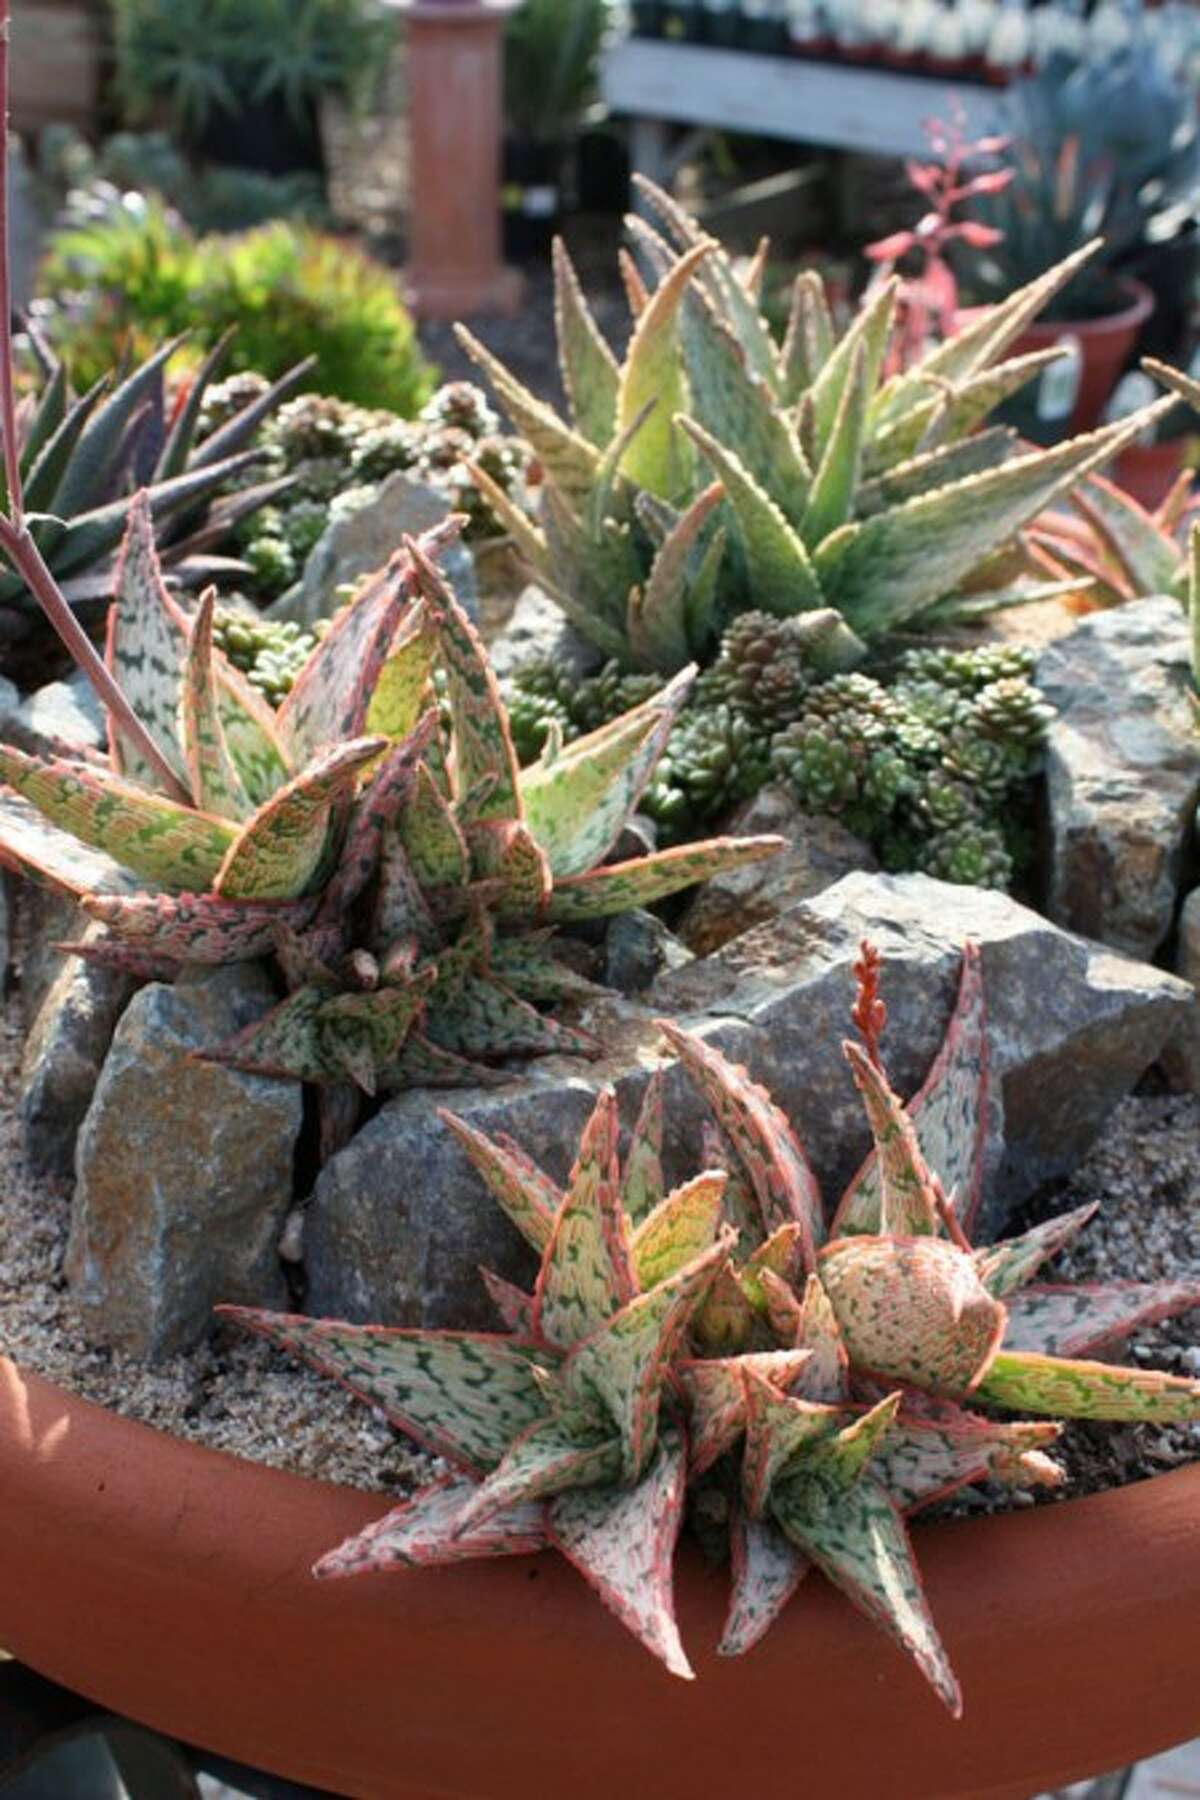 This photo released by Sunshine gardens nursery shows rocks enhancing a composition that features diminutive aloes with a bumpy texture. Design by Howard Vieweg. (AP Photo/ Sunshine Gardens Nursery,Debra Lee Baldwin)